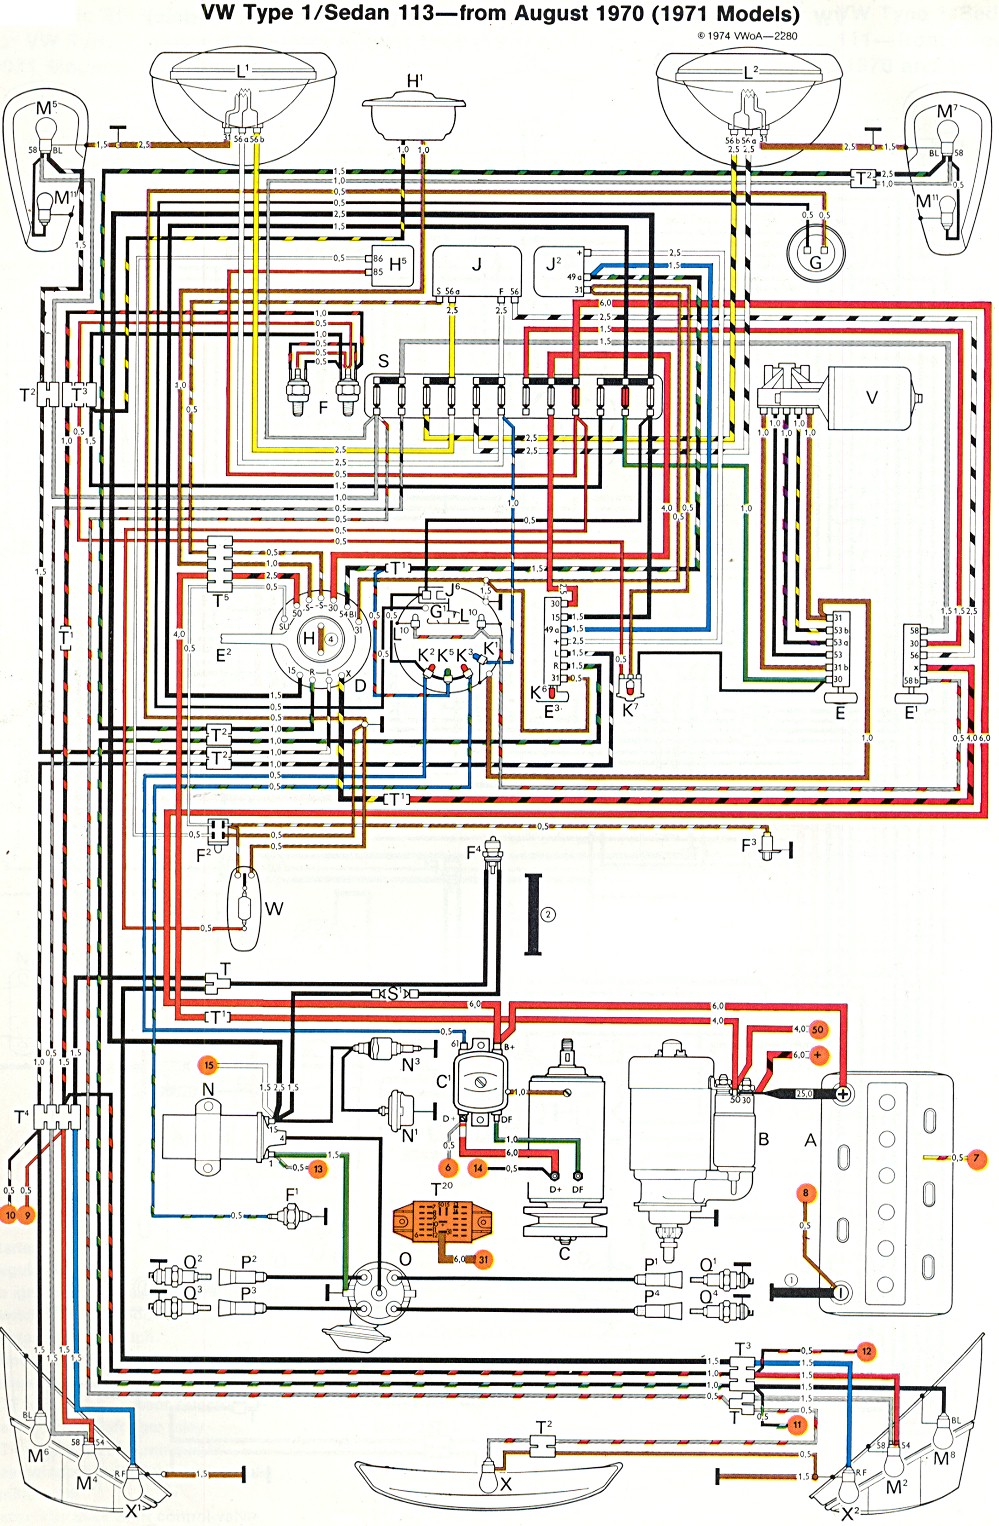 medium resolution of 1971 volkswagen wiring diagram simple wiring diagram 2007 vw passat fuse panel vw 1971 fuse diagram